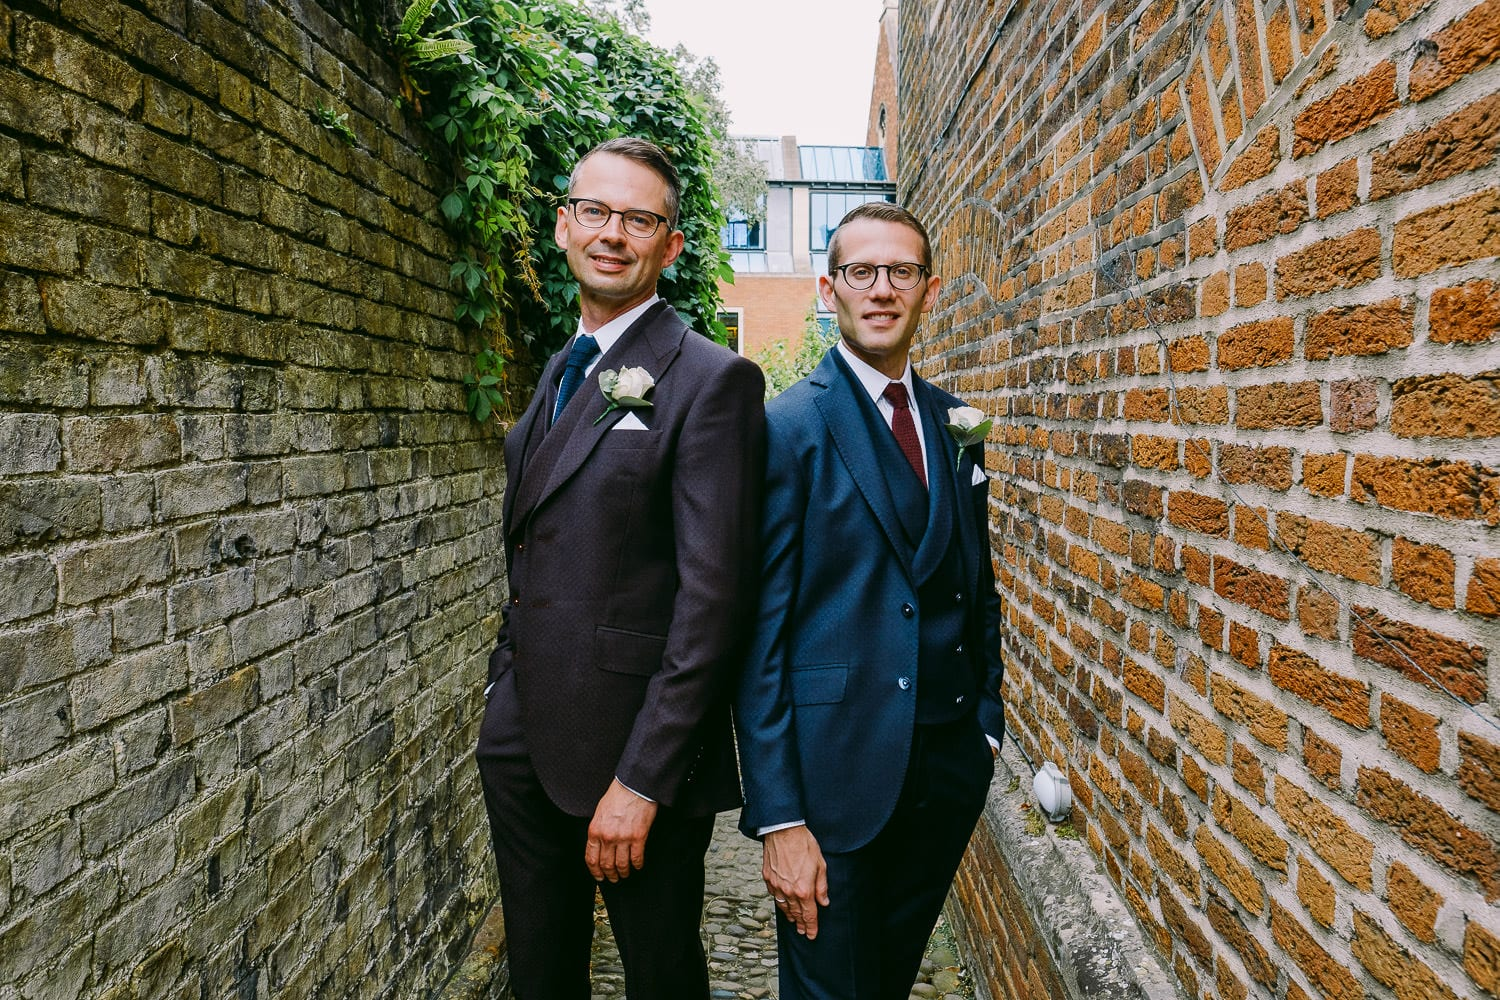 A portrait of the groom and groom